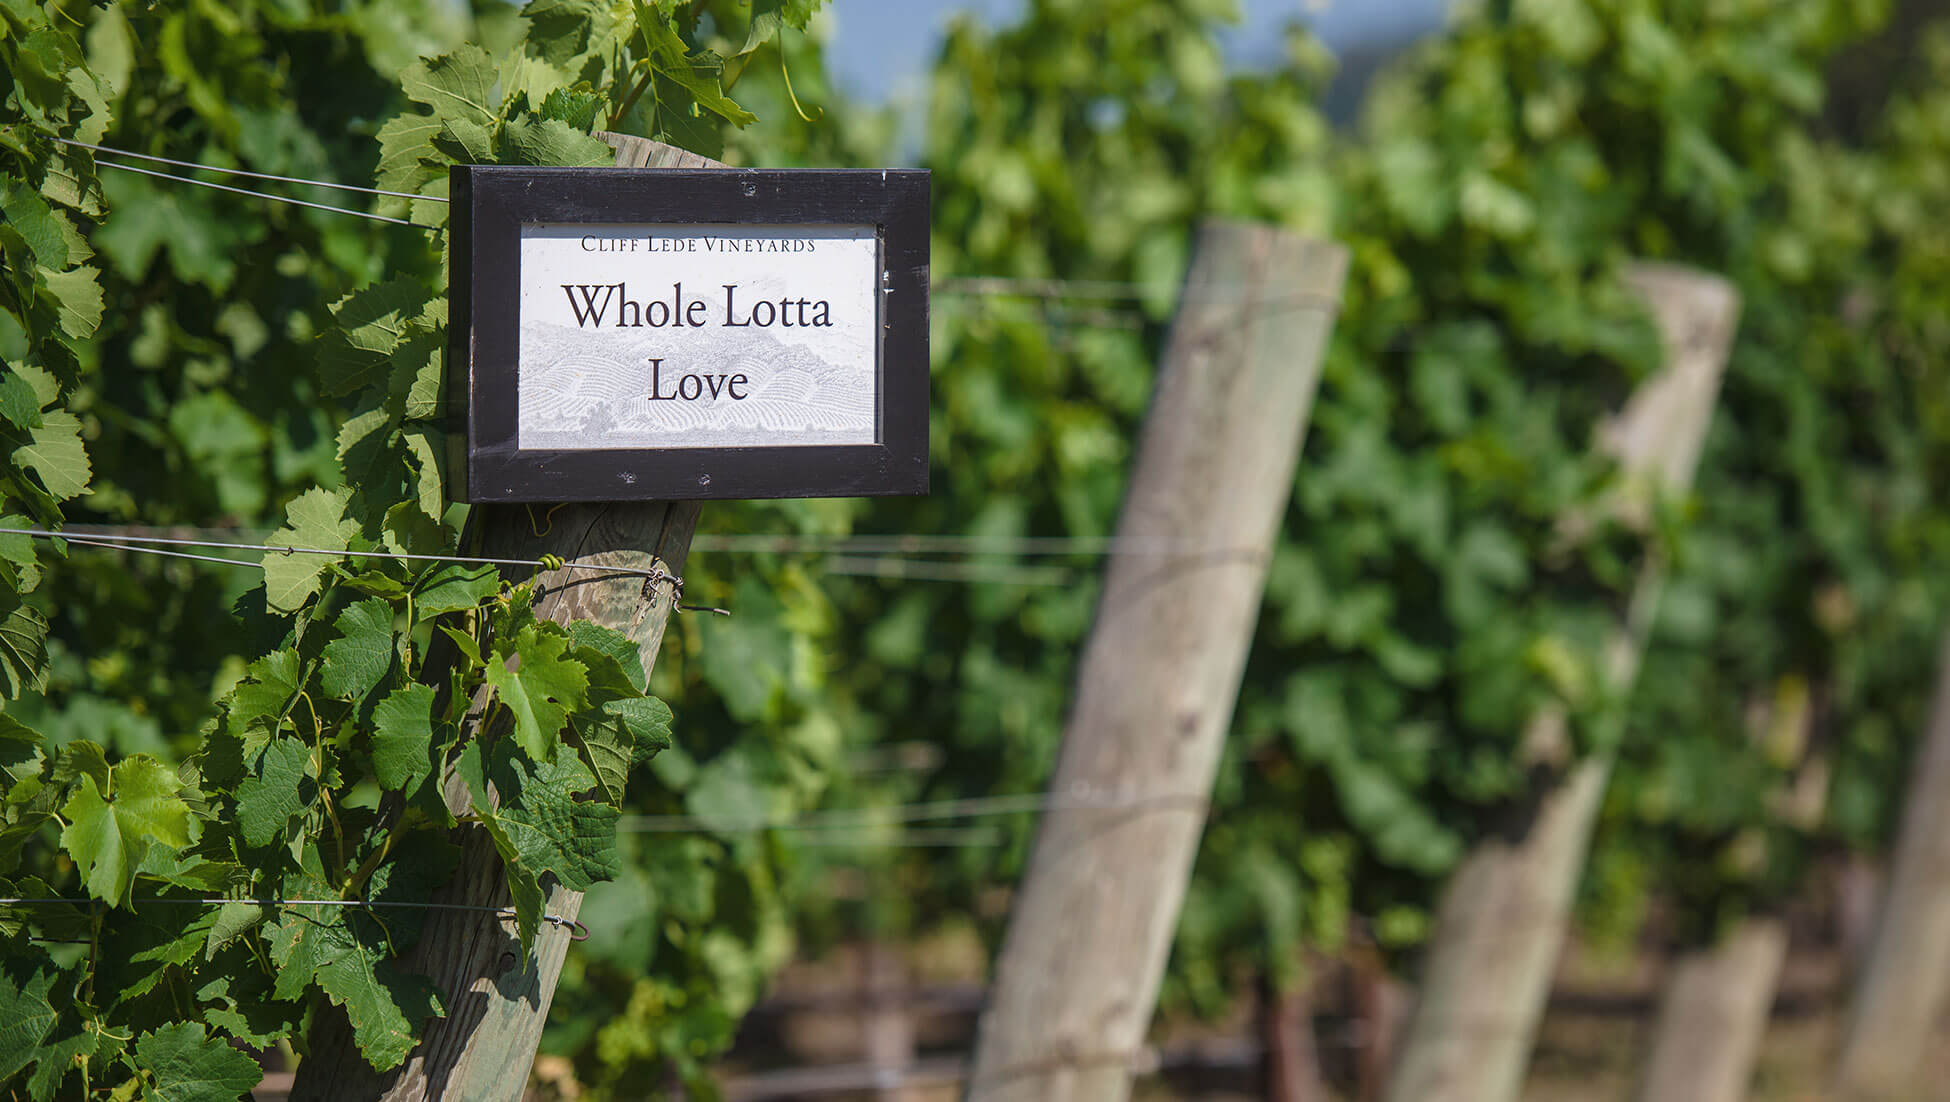 Whole Lotta Love vineyard sign